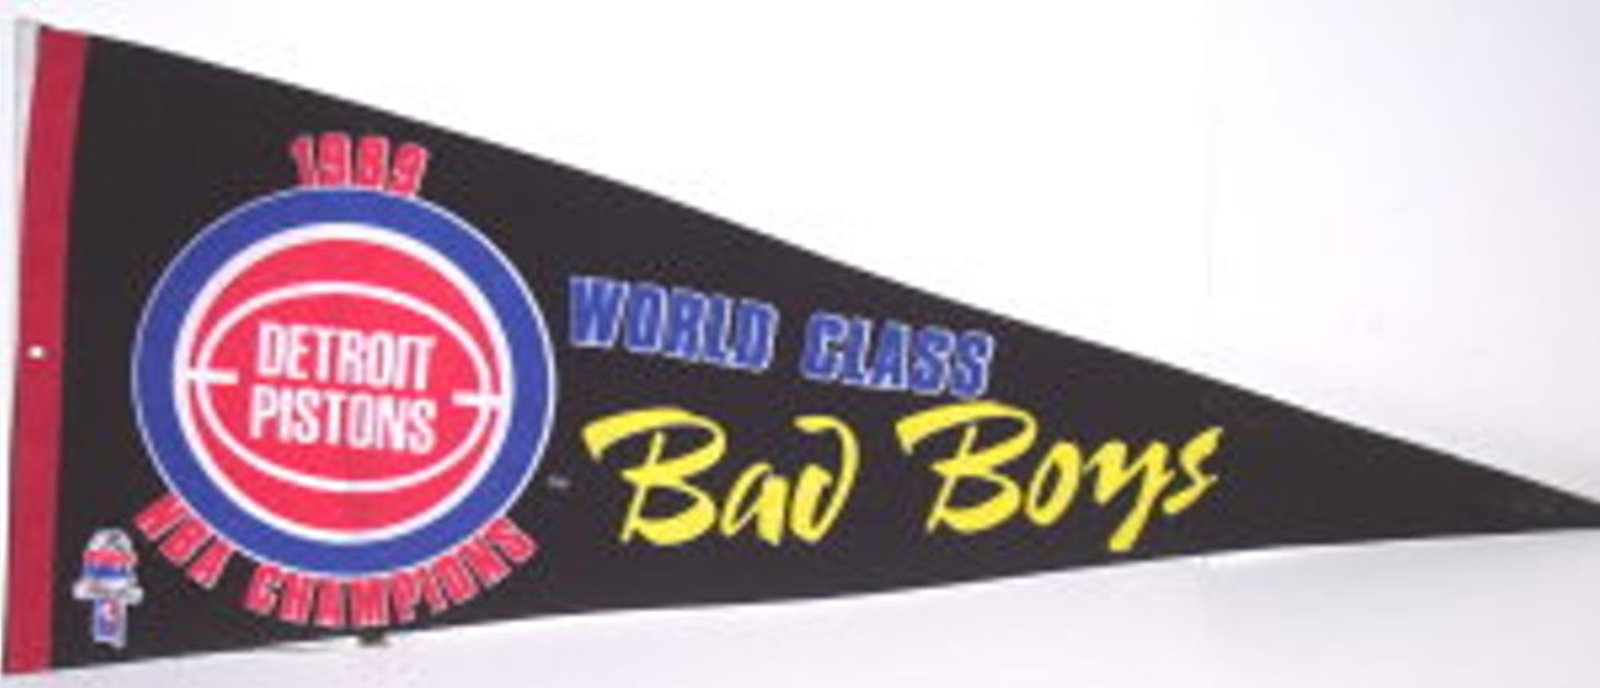 Detroit Pistons 1989 NBA Champions World Class Bad Boys Pennant